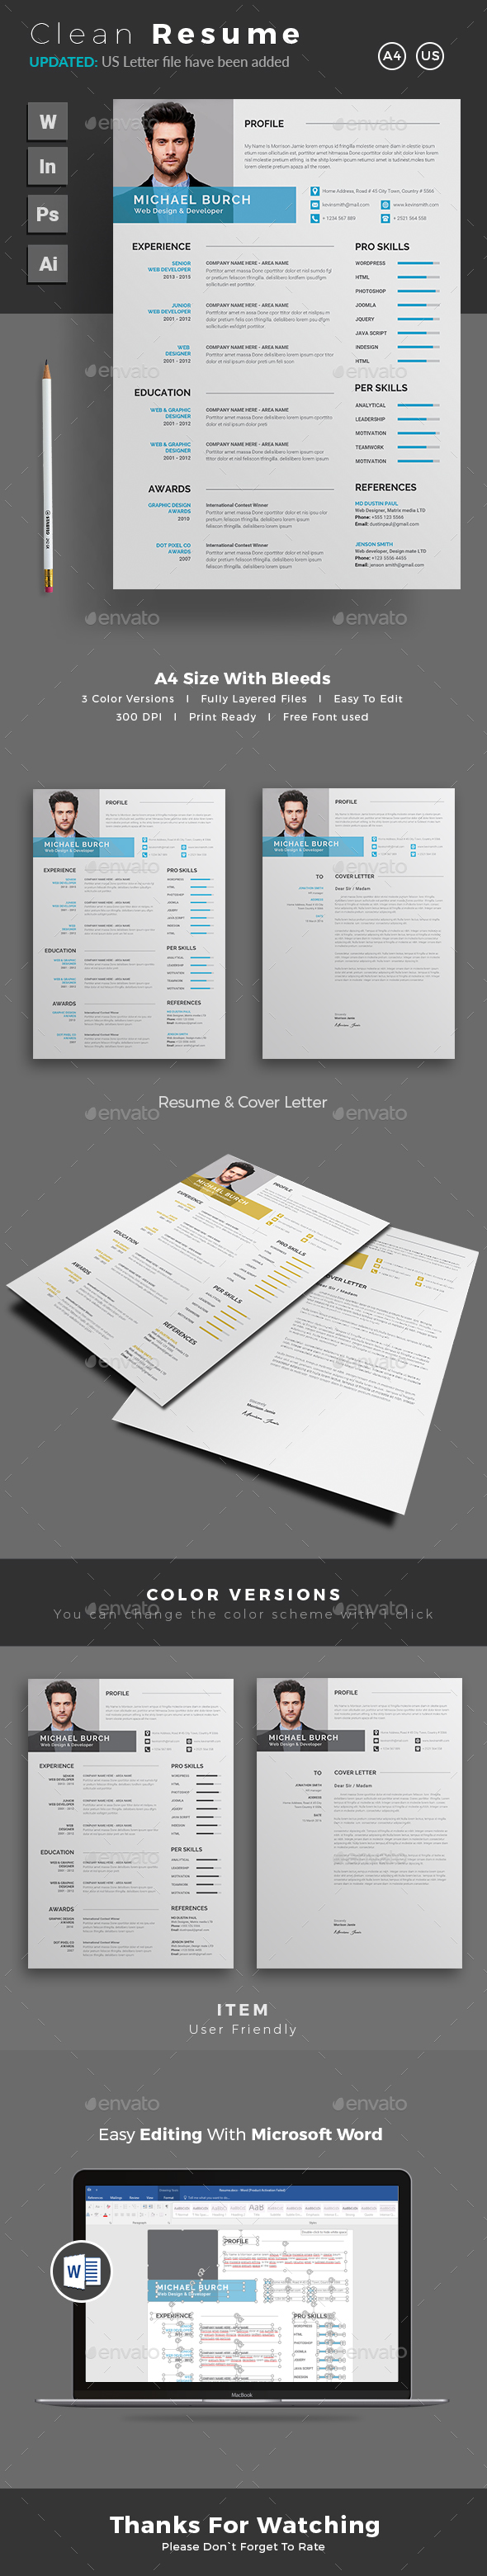 Graphicriver   Resume Free Download free download Graphicriver   Resume Free Download nulled Graphicriver   Resume Free Download